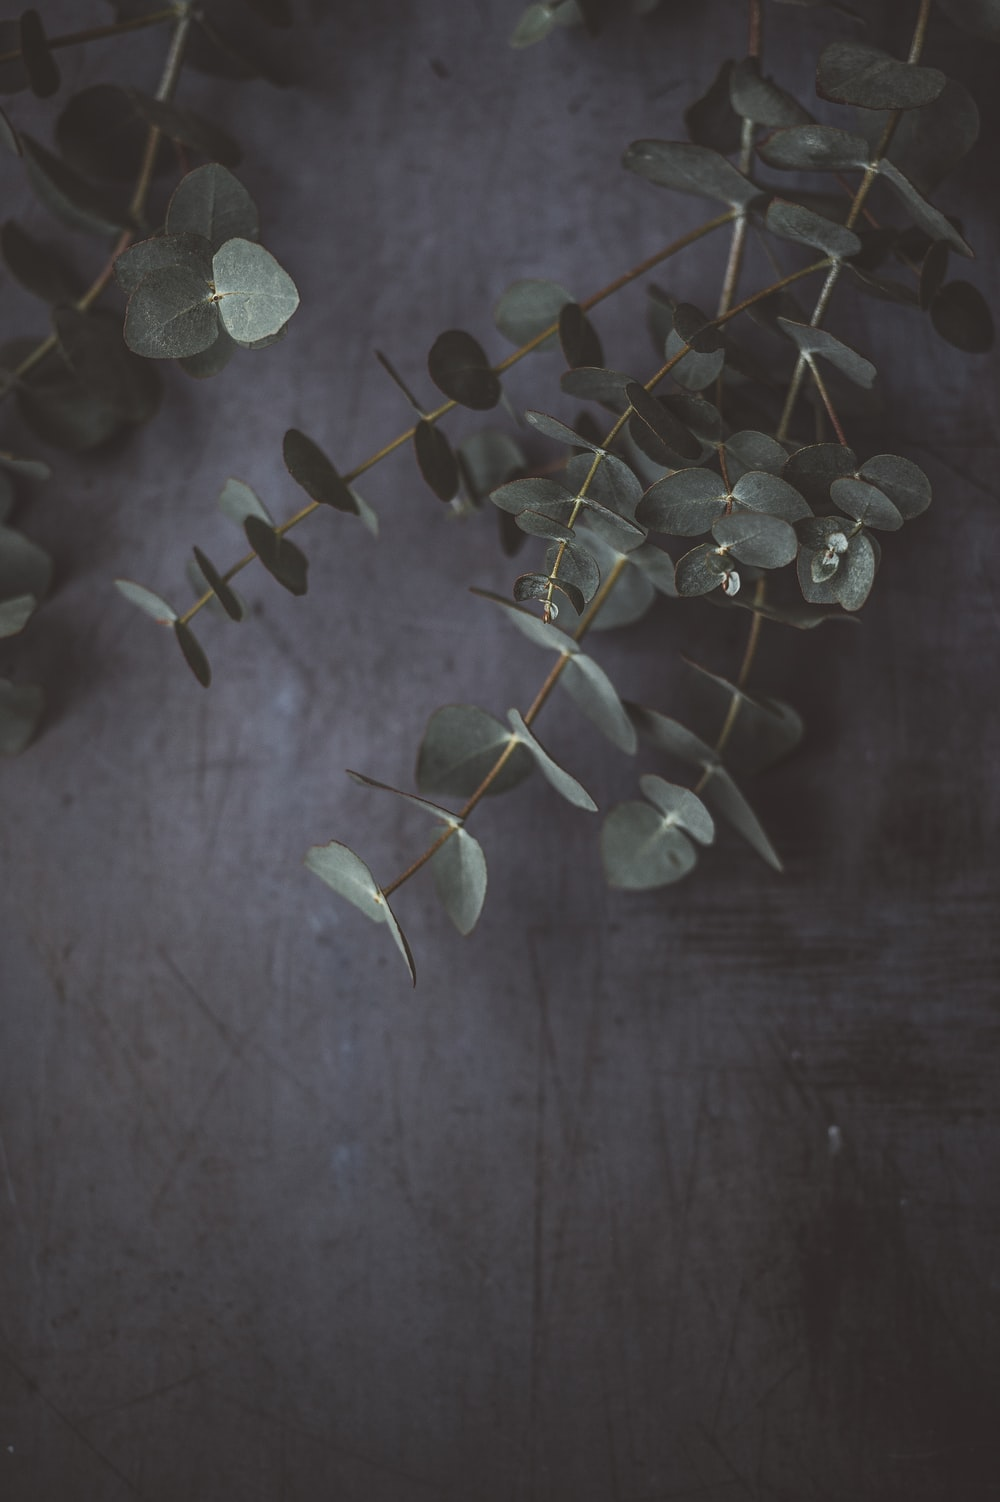 closeup photo of green leafed plant on gray surface